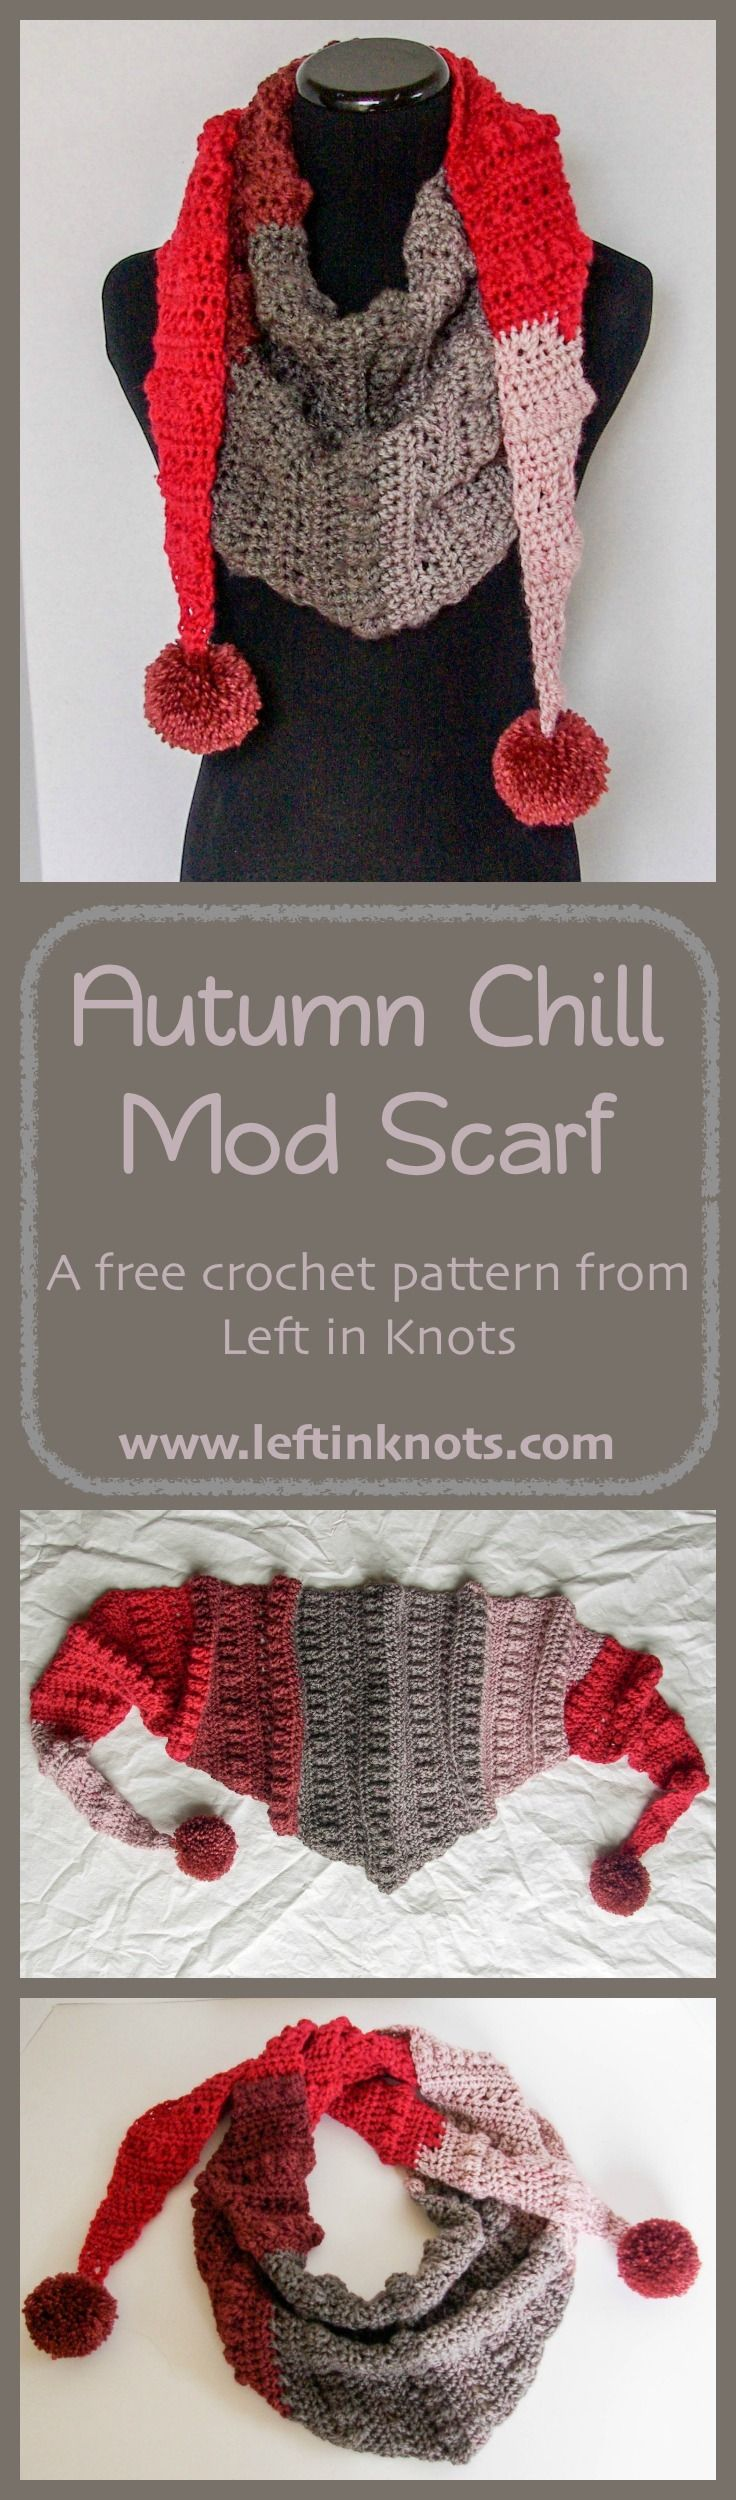 A free and modern triangle scarf crochet pattern.  Part of the Autumn Chill crochet series from Left in Knots. Made with Caron Cakes yarn or any other worsted weight yarn of your choice.  Customize the pattern with pom poms or tassels!